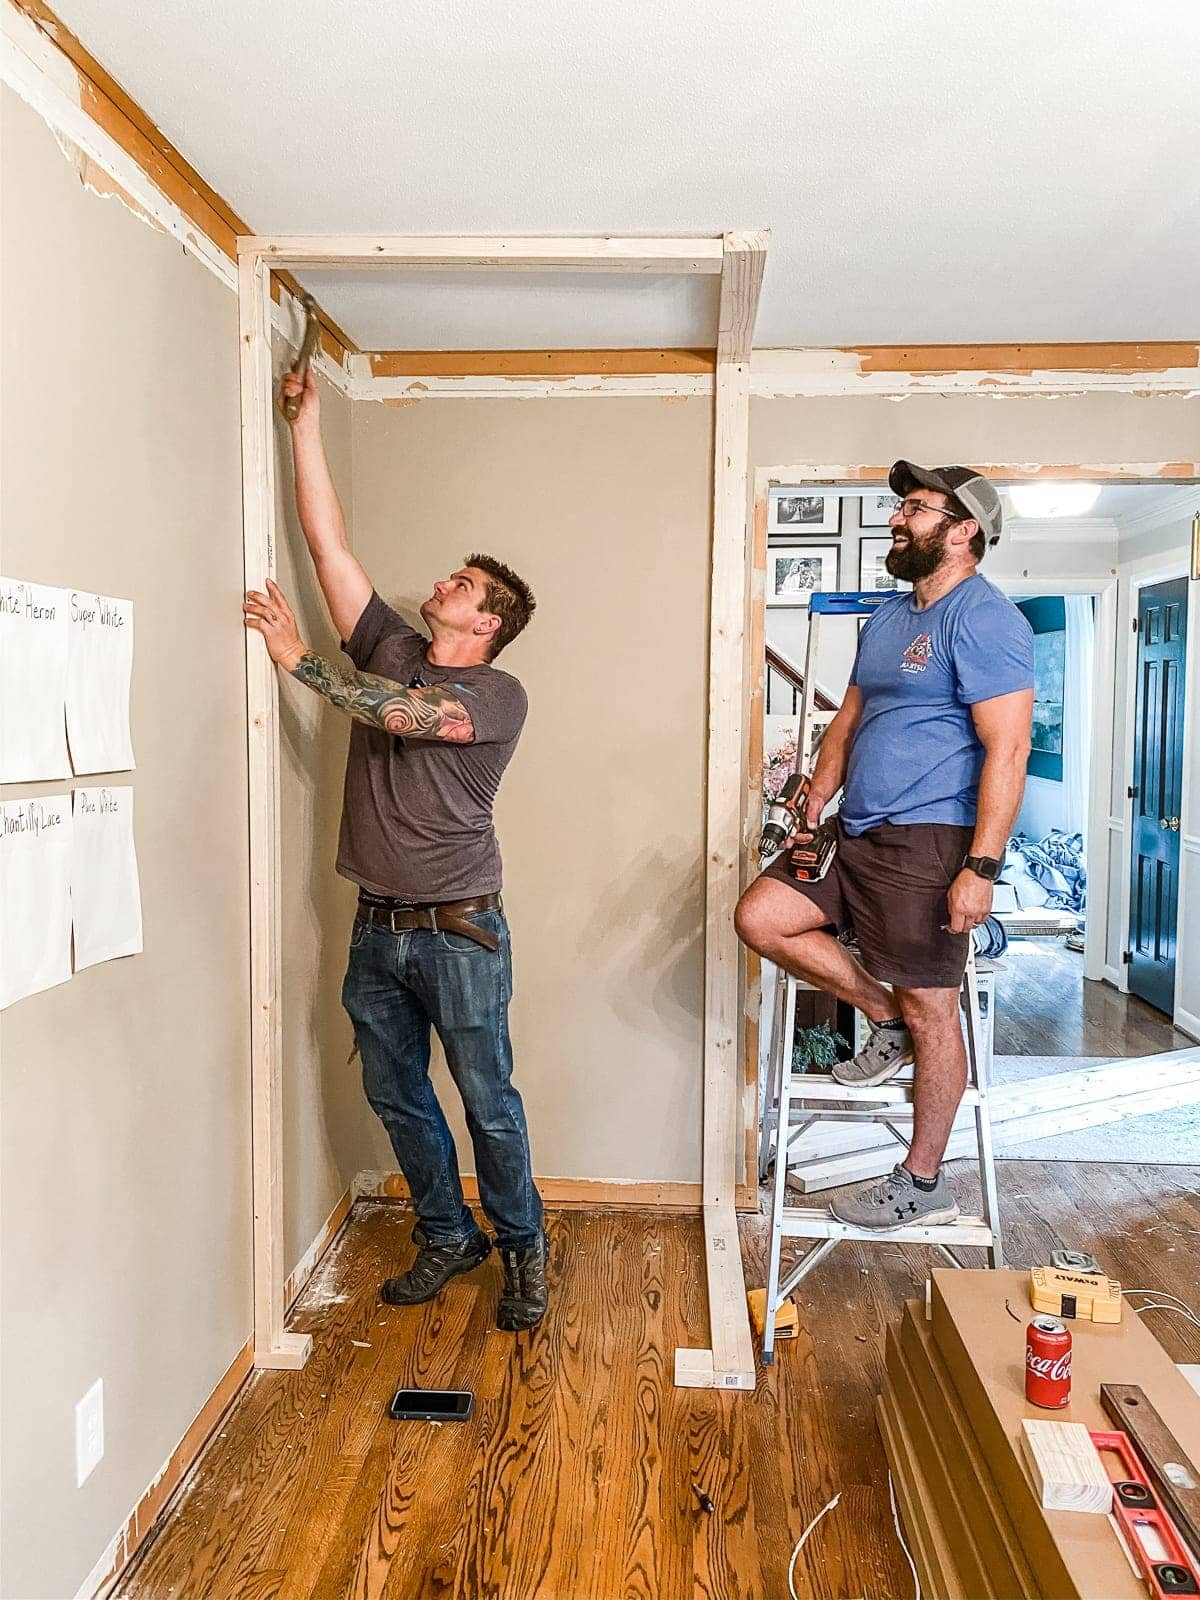 How to Build a Closet   A step-by-step tutorial to DIY build a closet from scratch + home office makeover progress